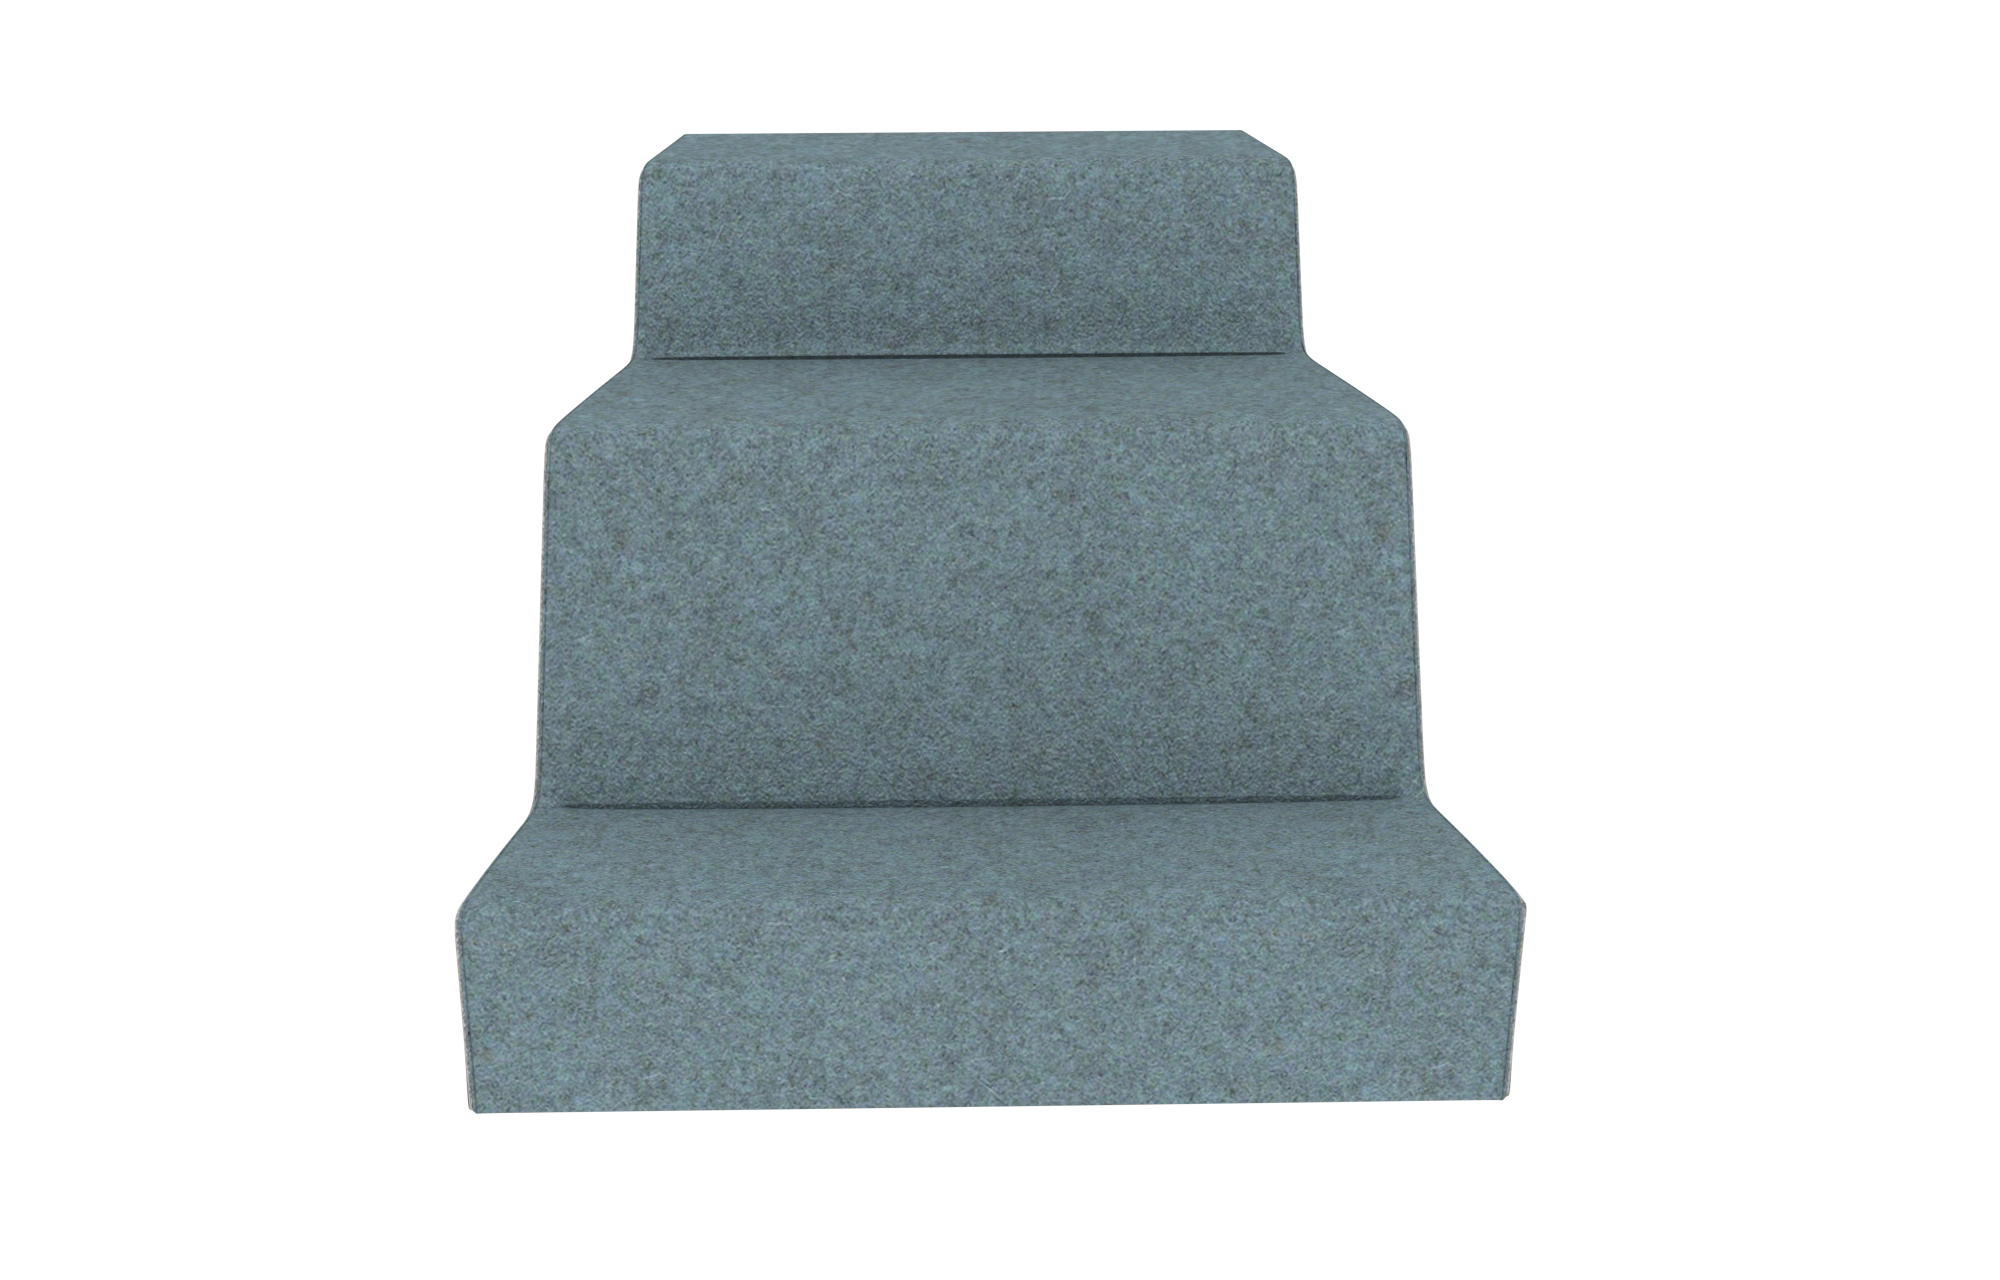 Hickory Contract UPpJr. Modular Lounge 4021-3S